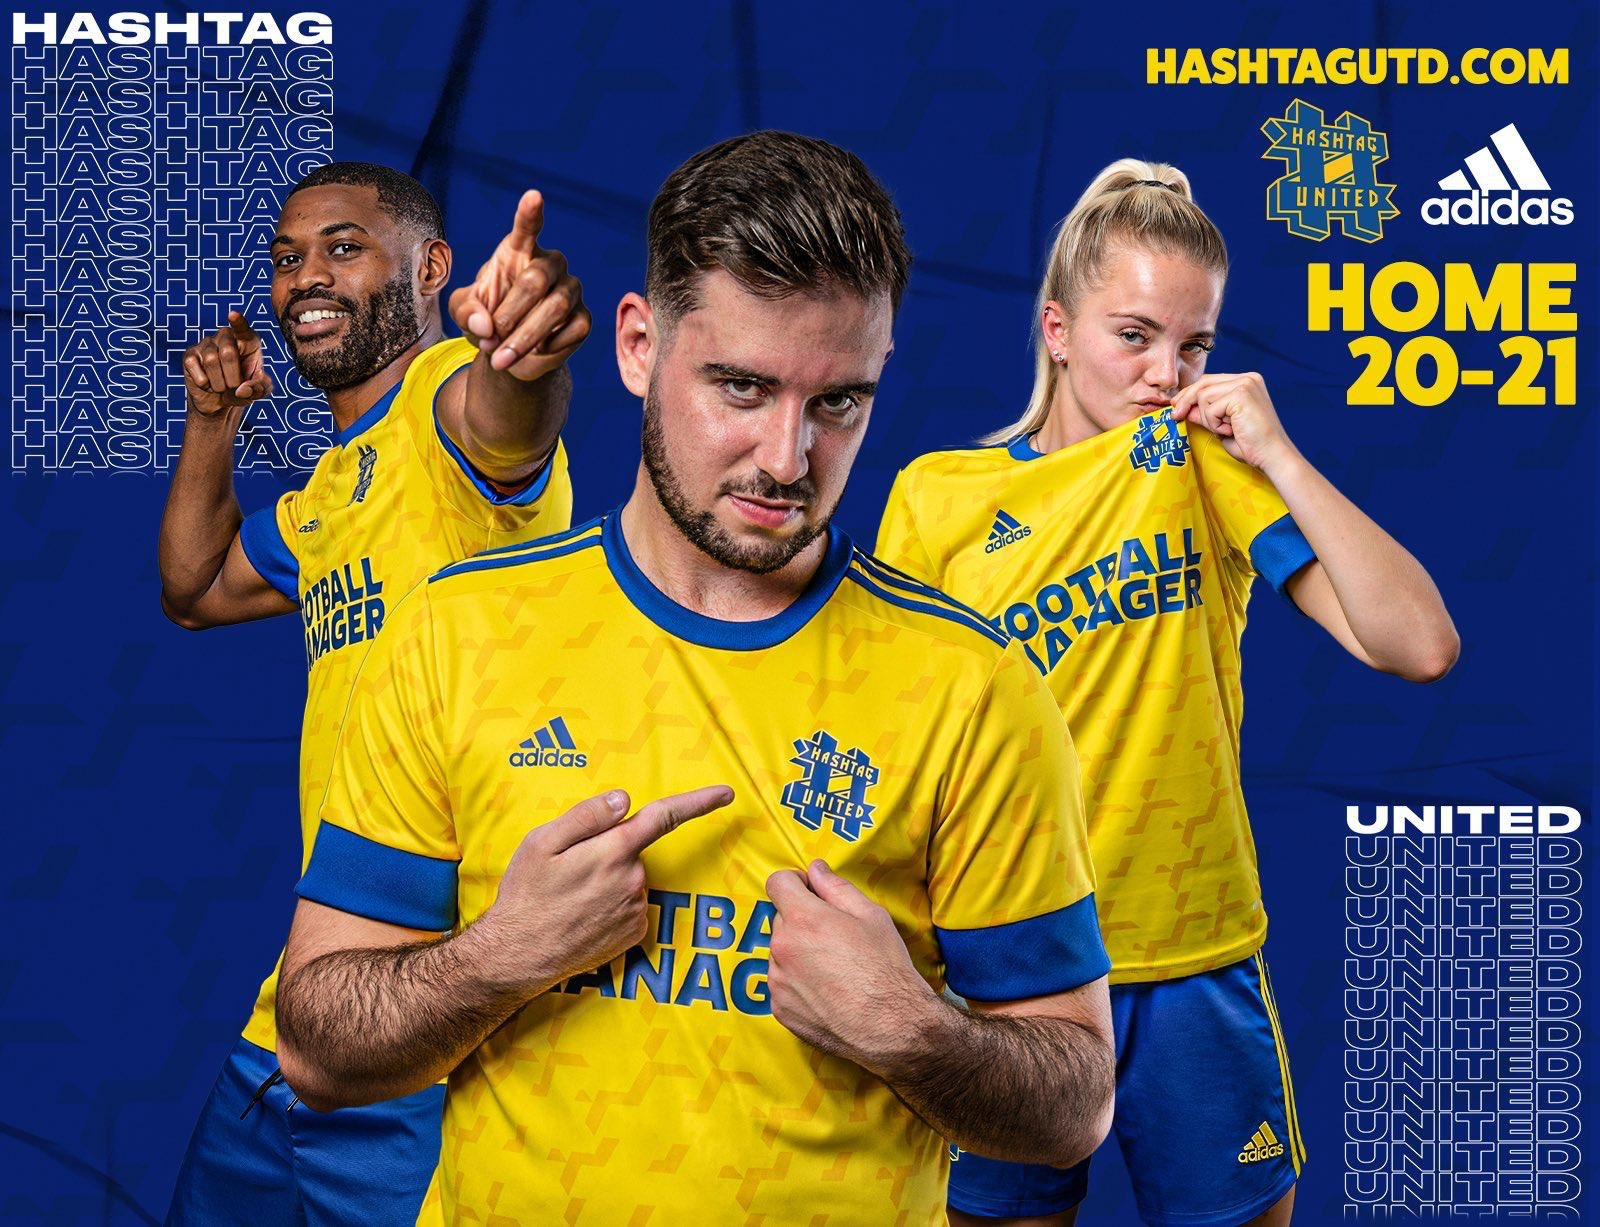 Camisas do Hashtag United 2020-2021 Adidas